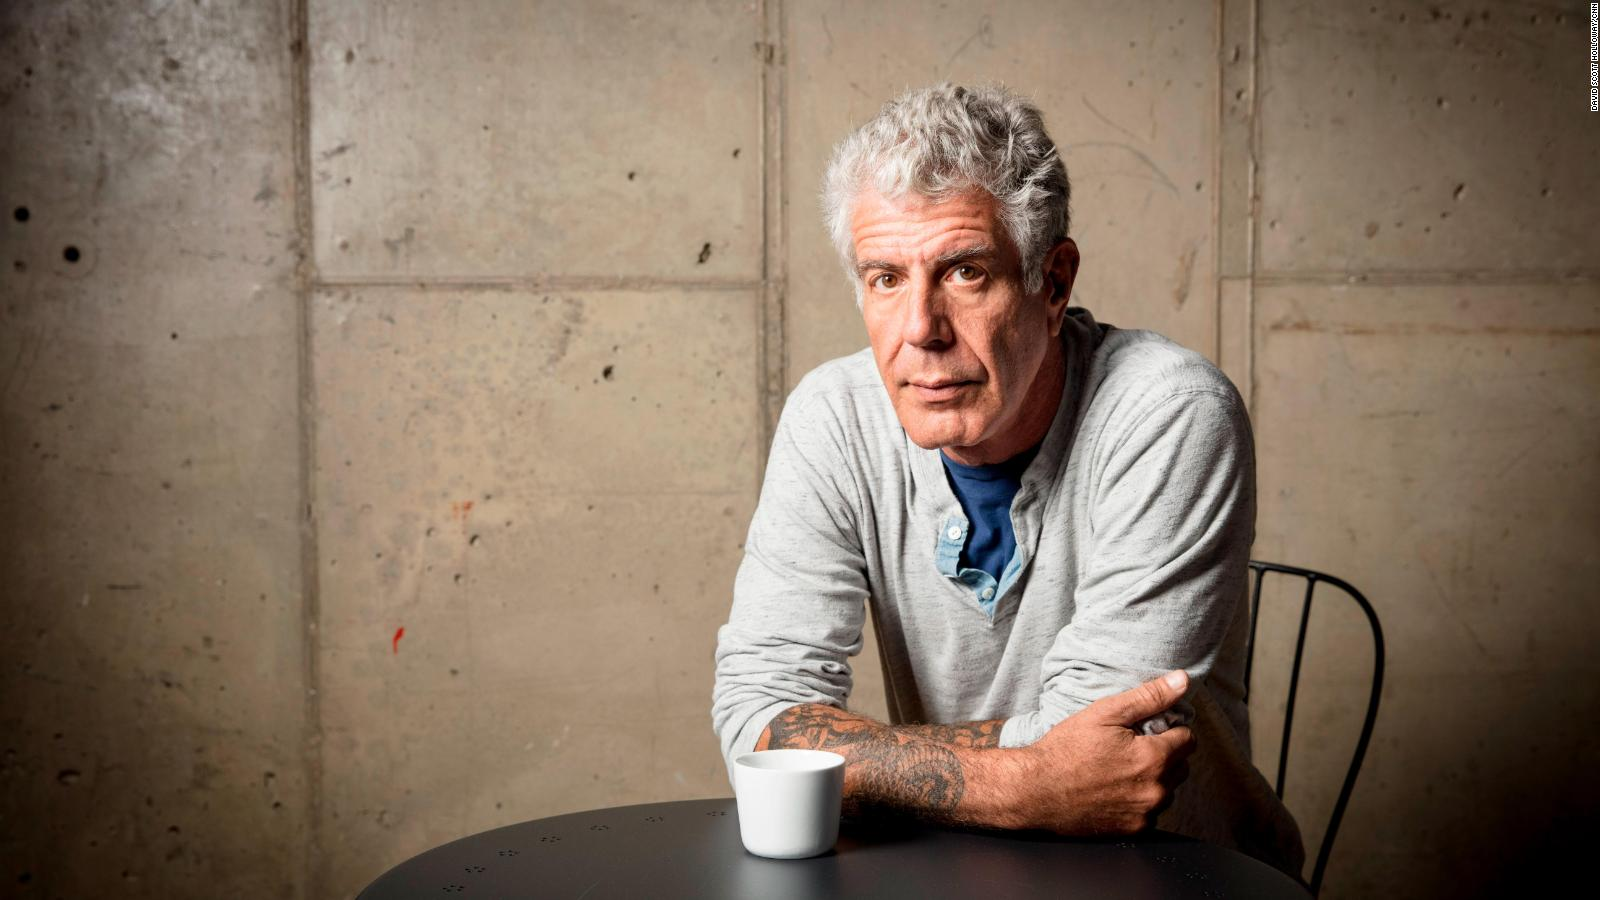 Anthony Bourdain: A leader in online engagement across the documentary genre